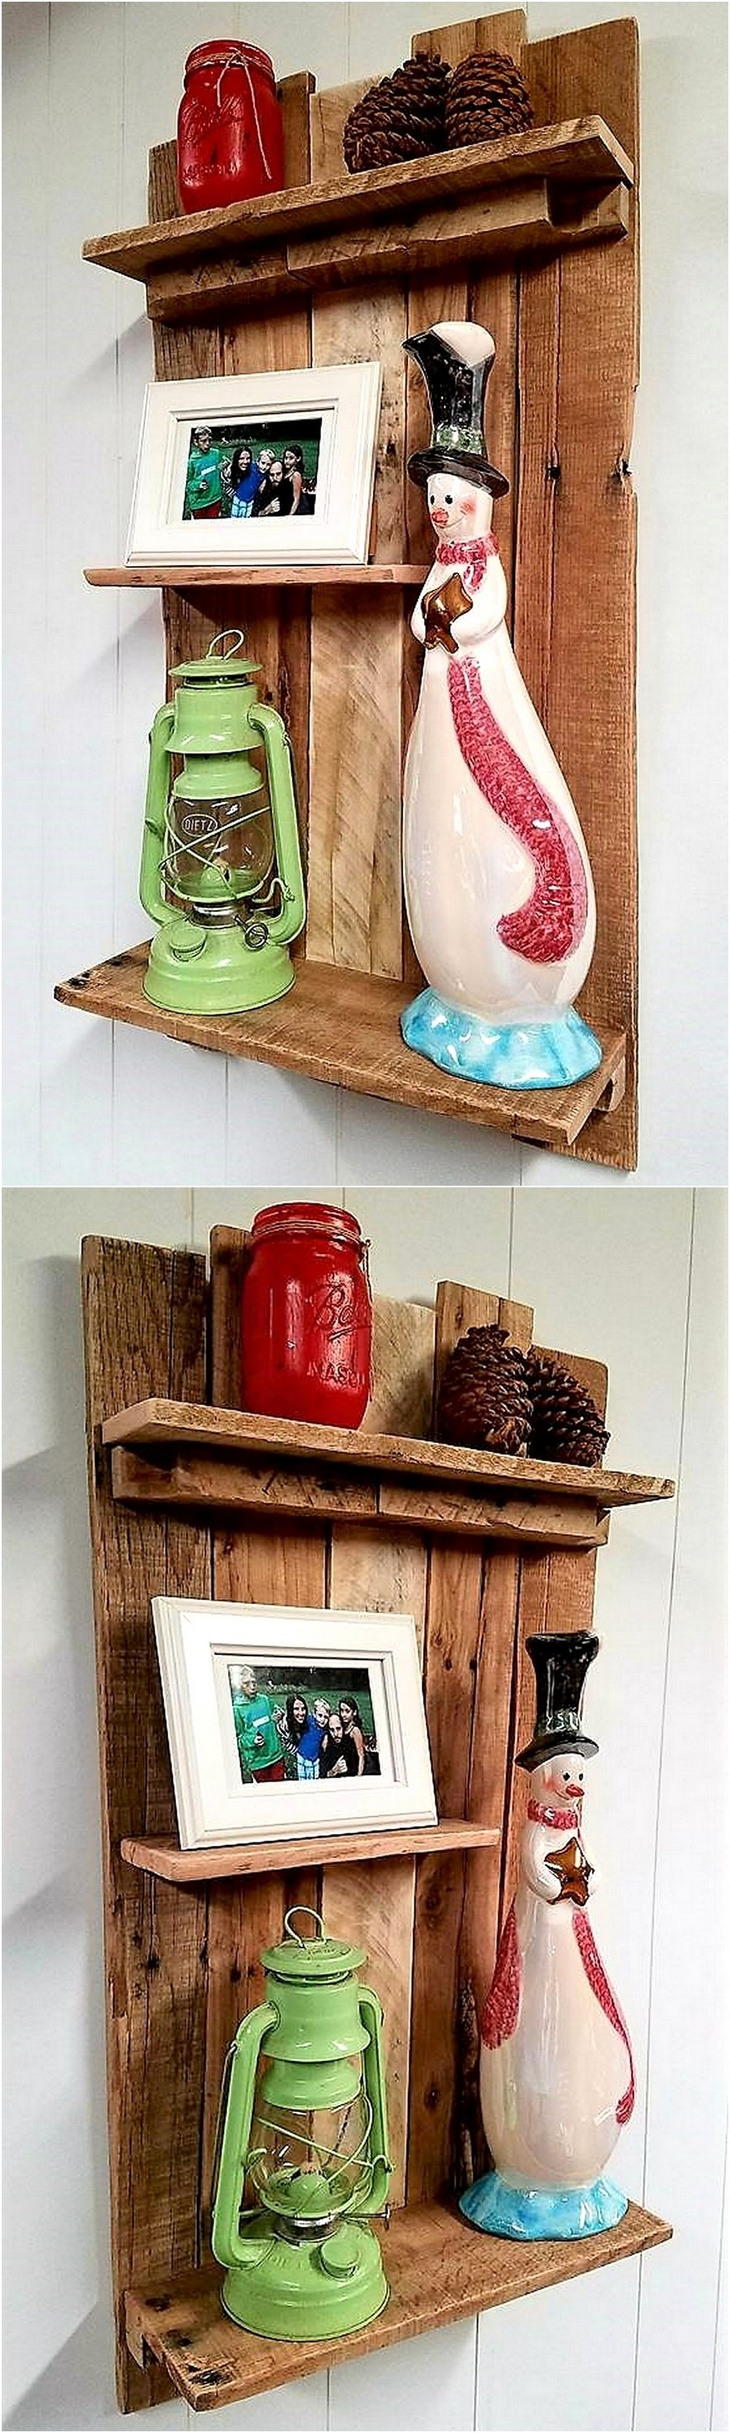 pallet-wall-shelf-art